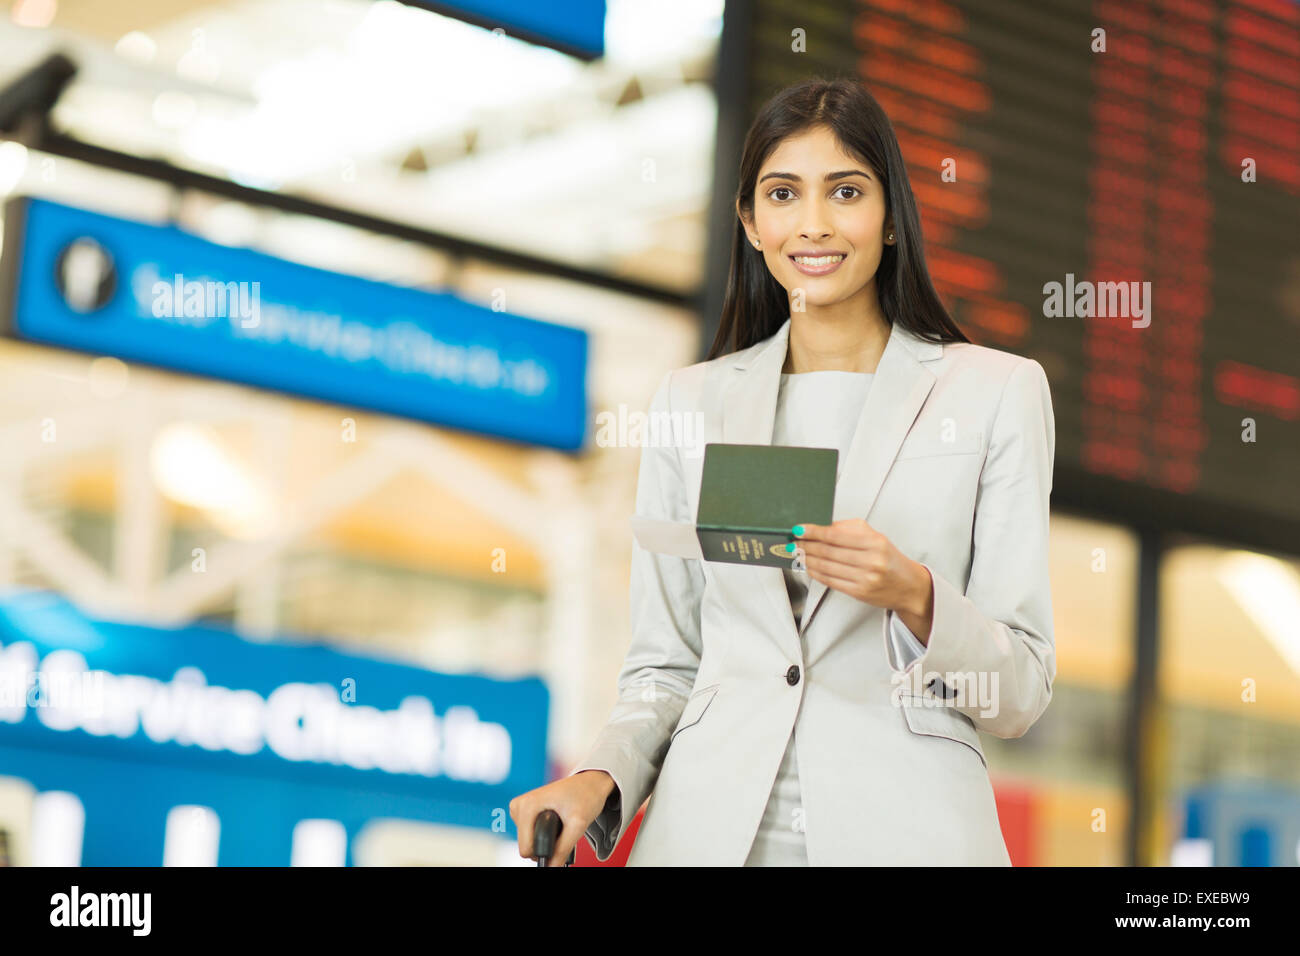 business traveller holding passport and boarding pass in front of flight information board at airport - Stock Image